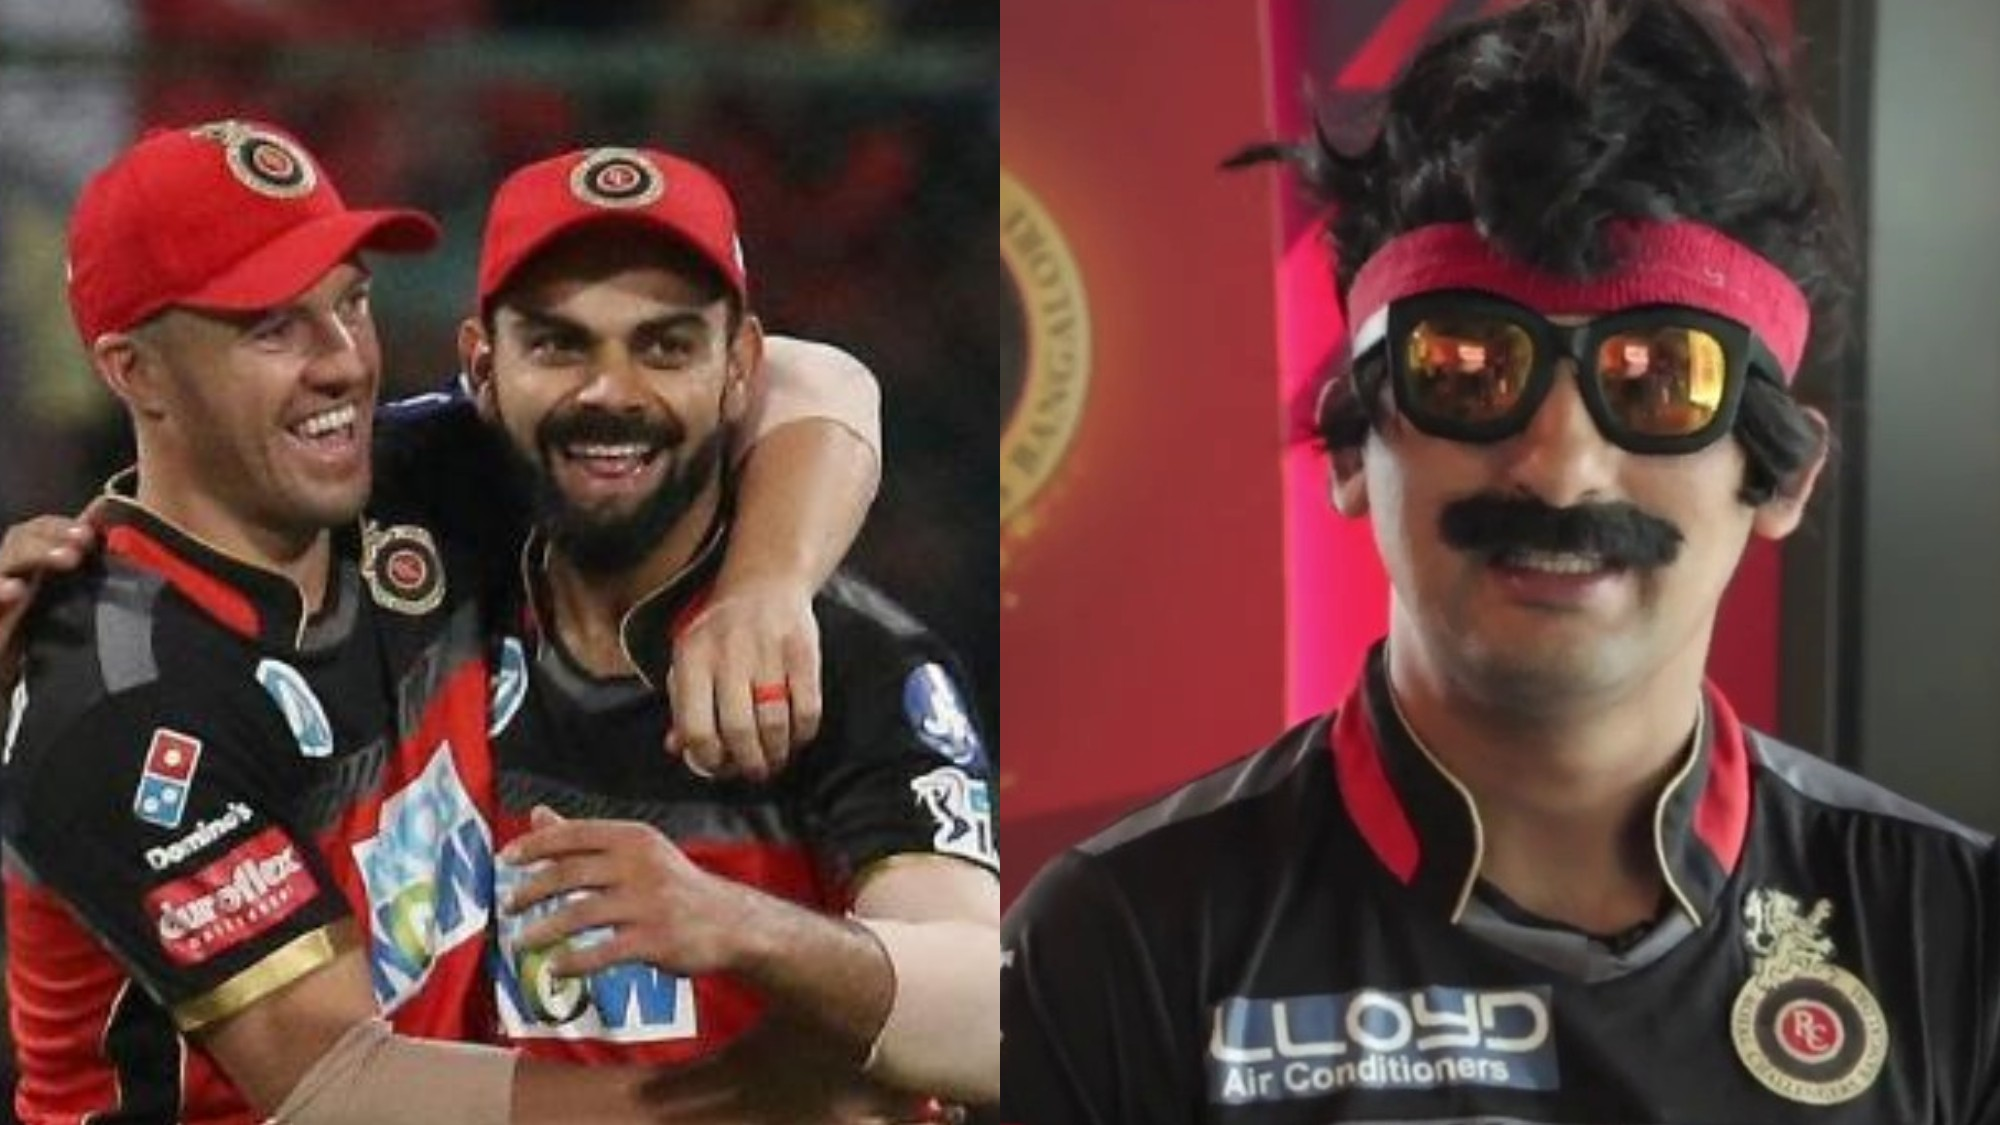 IPL 2020: Rajasthan Royals want AB de Villiers and Virat Kohli from RCB; RCB offers someone better